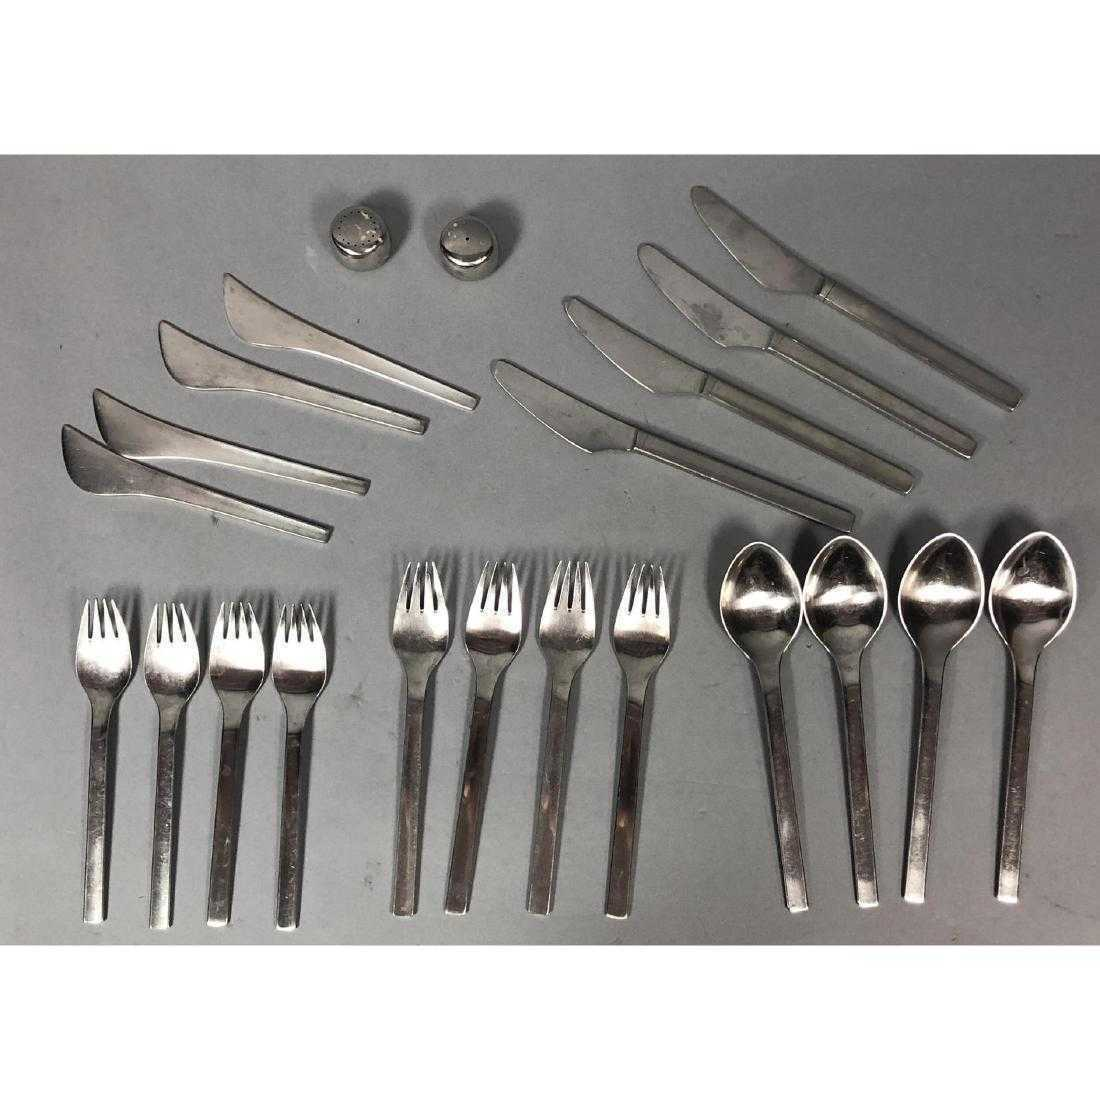 22 pc VINTAGE GEORG JENSEN TUJA TANAQUIL TANAQUIL TANAQUIL STAINLESS STEEL FLATWARE SET c3e432